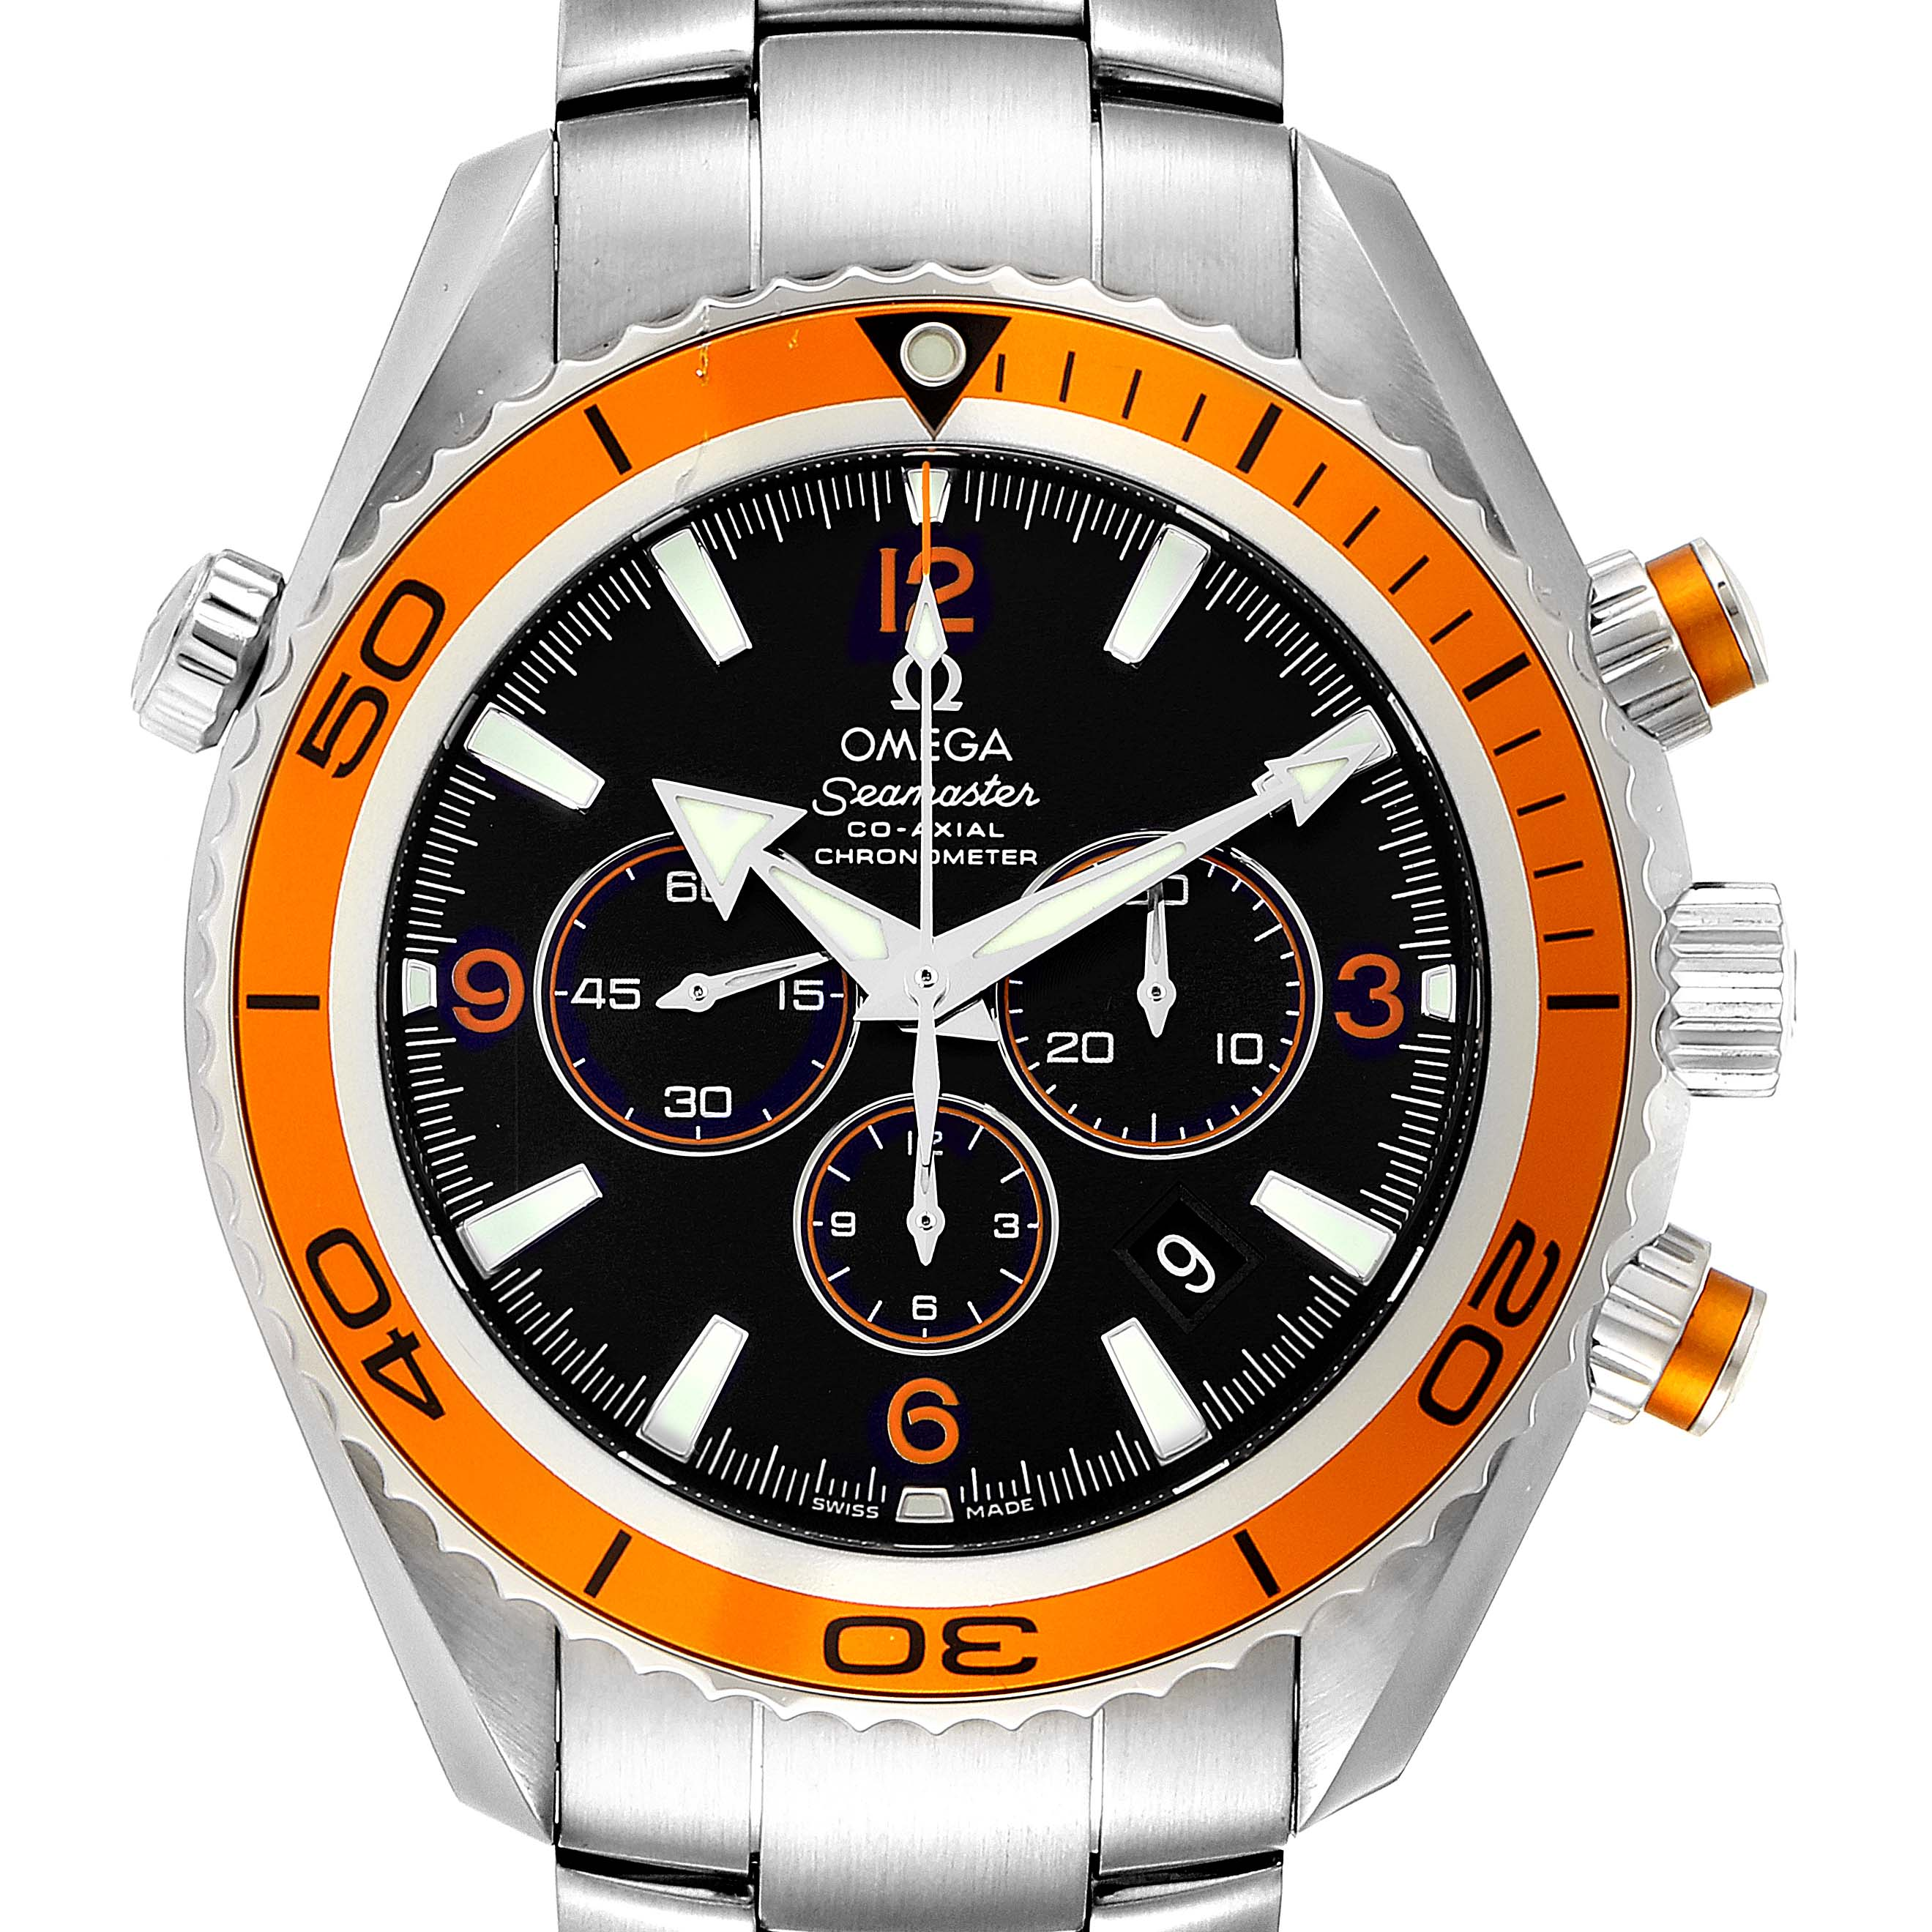 Photo of Omega Seamaster Planet Ocean XL Chrono Mens Watch 2218.50.00